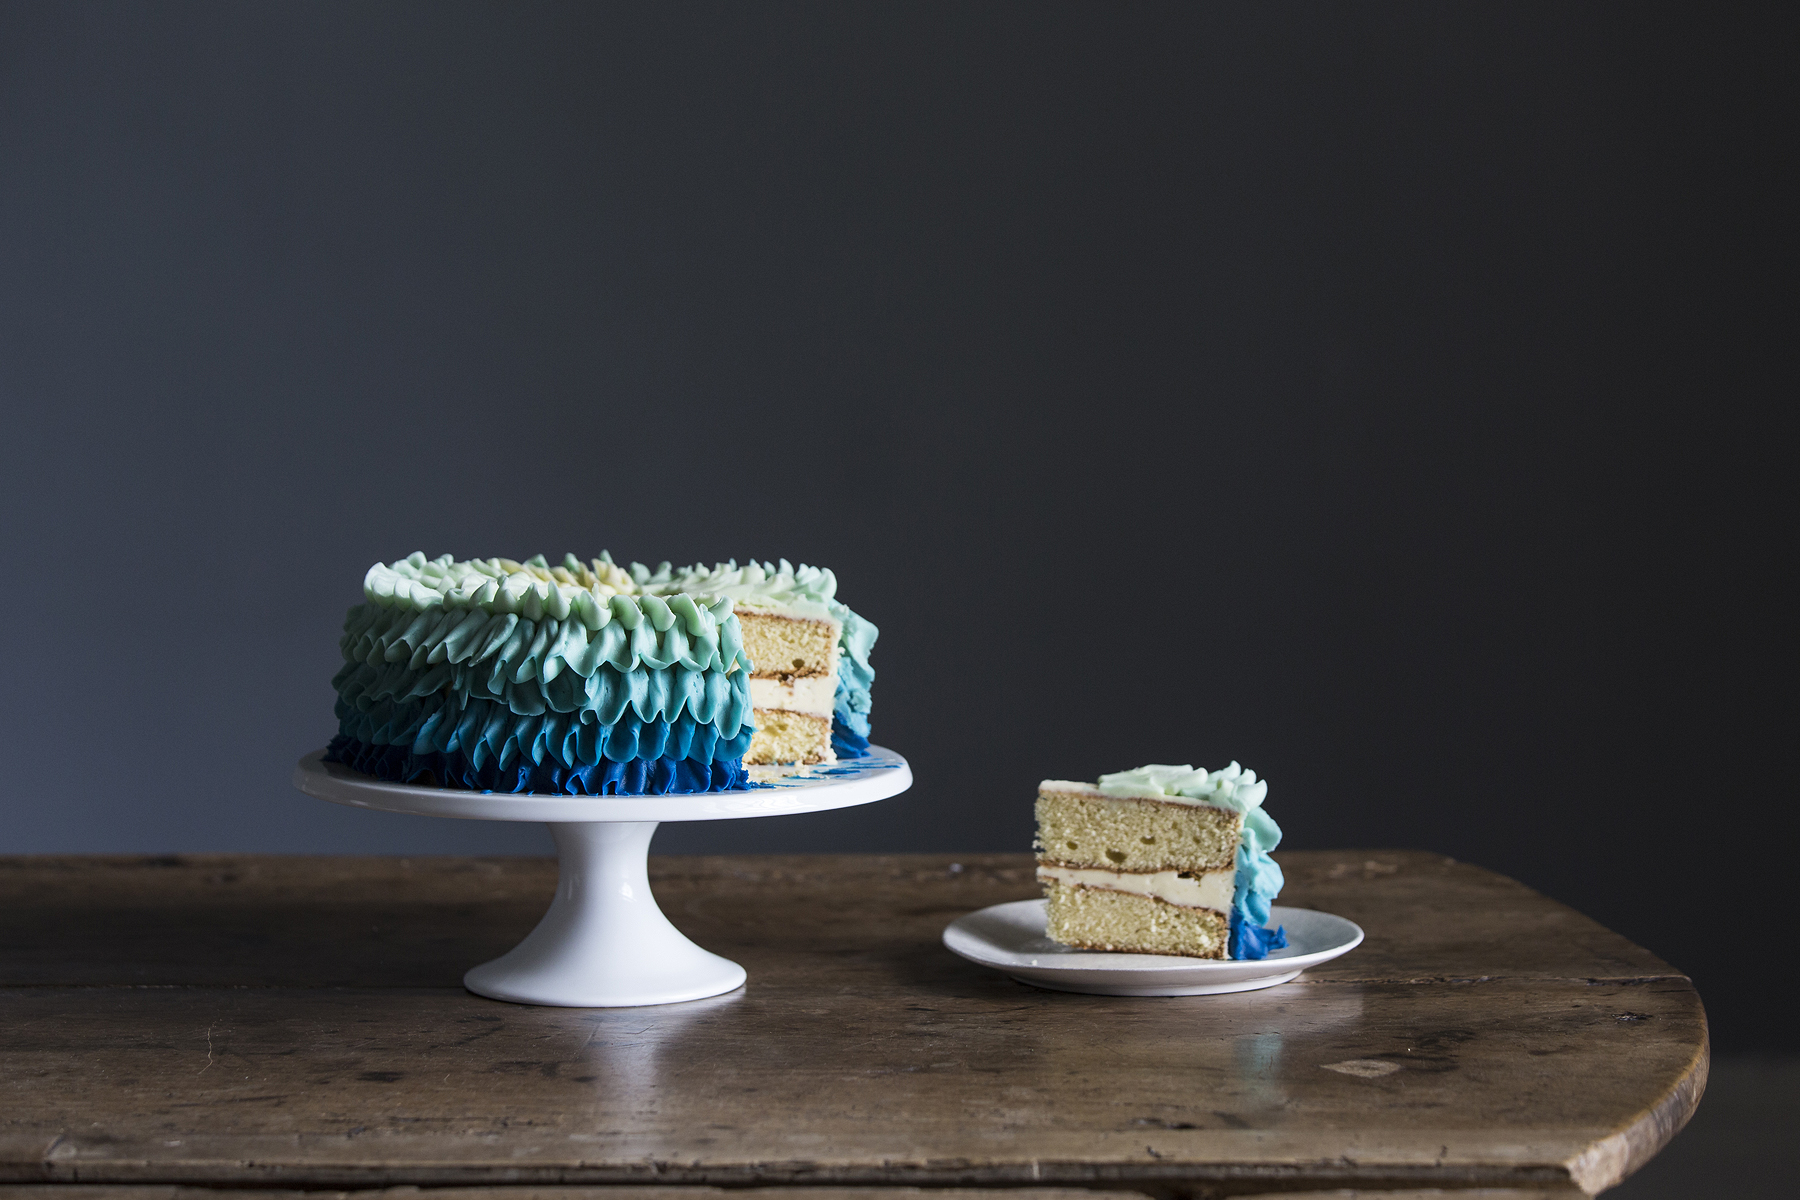 Food Photography & Styling Catherine Frawley